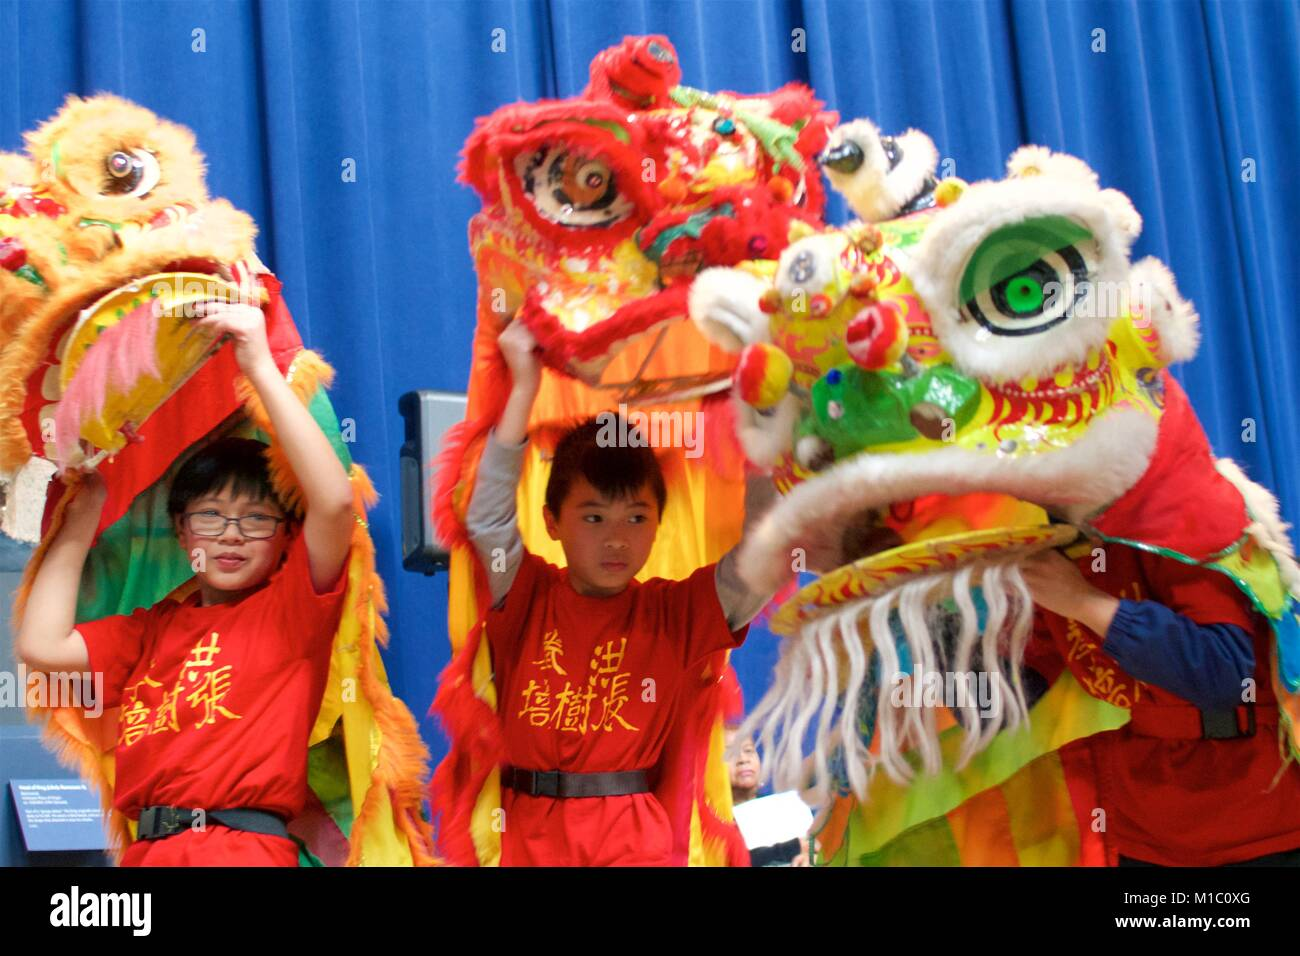 Philadelphia, PA, USA - January 27, 2018: A traditional Chinese lion dance is performed as part of Chinese New Year - Stock Image